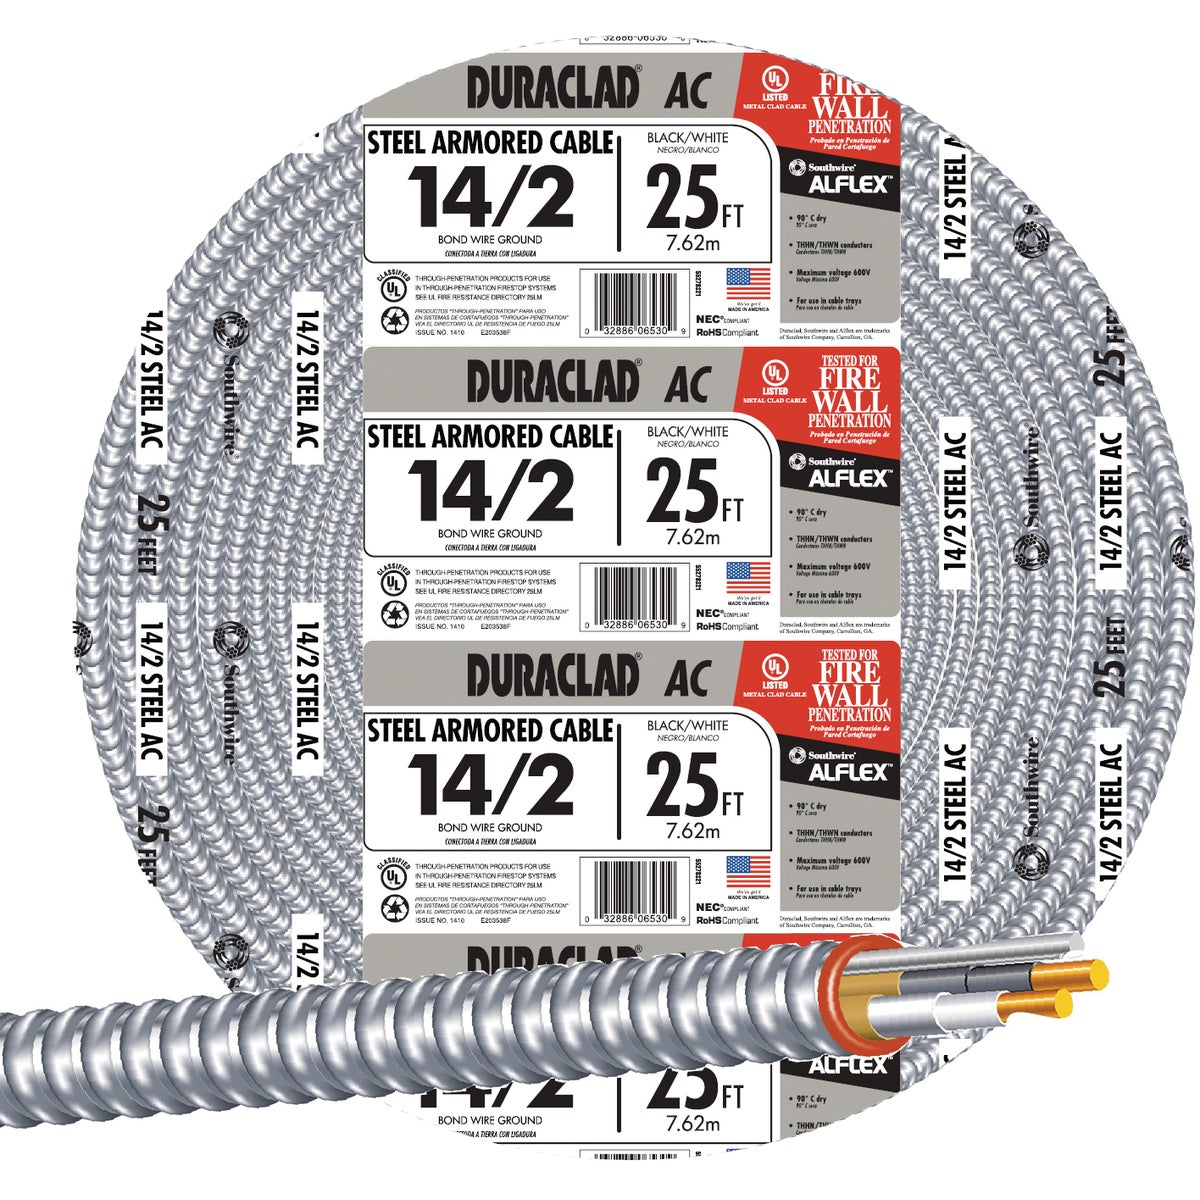 25' 14/2 STL ARMOR CABLE - 55278321 by Southwire Company